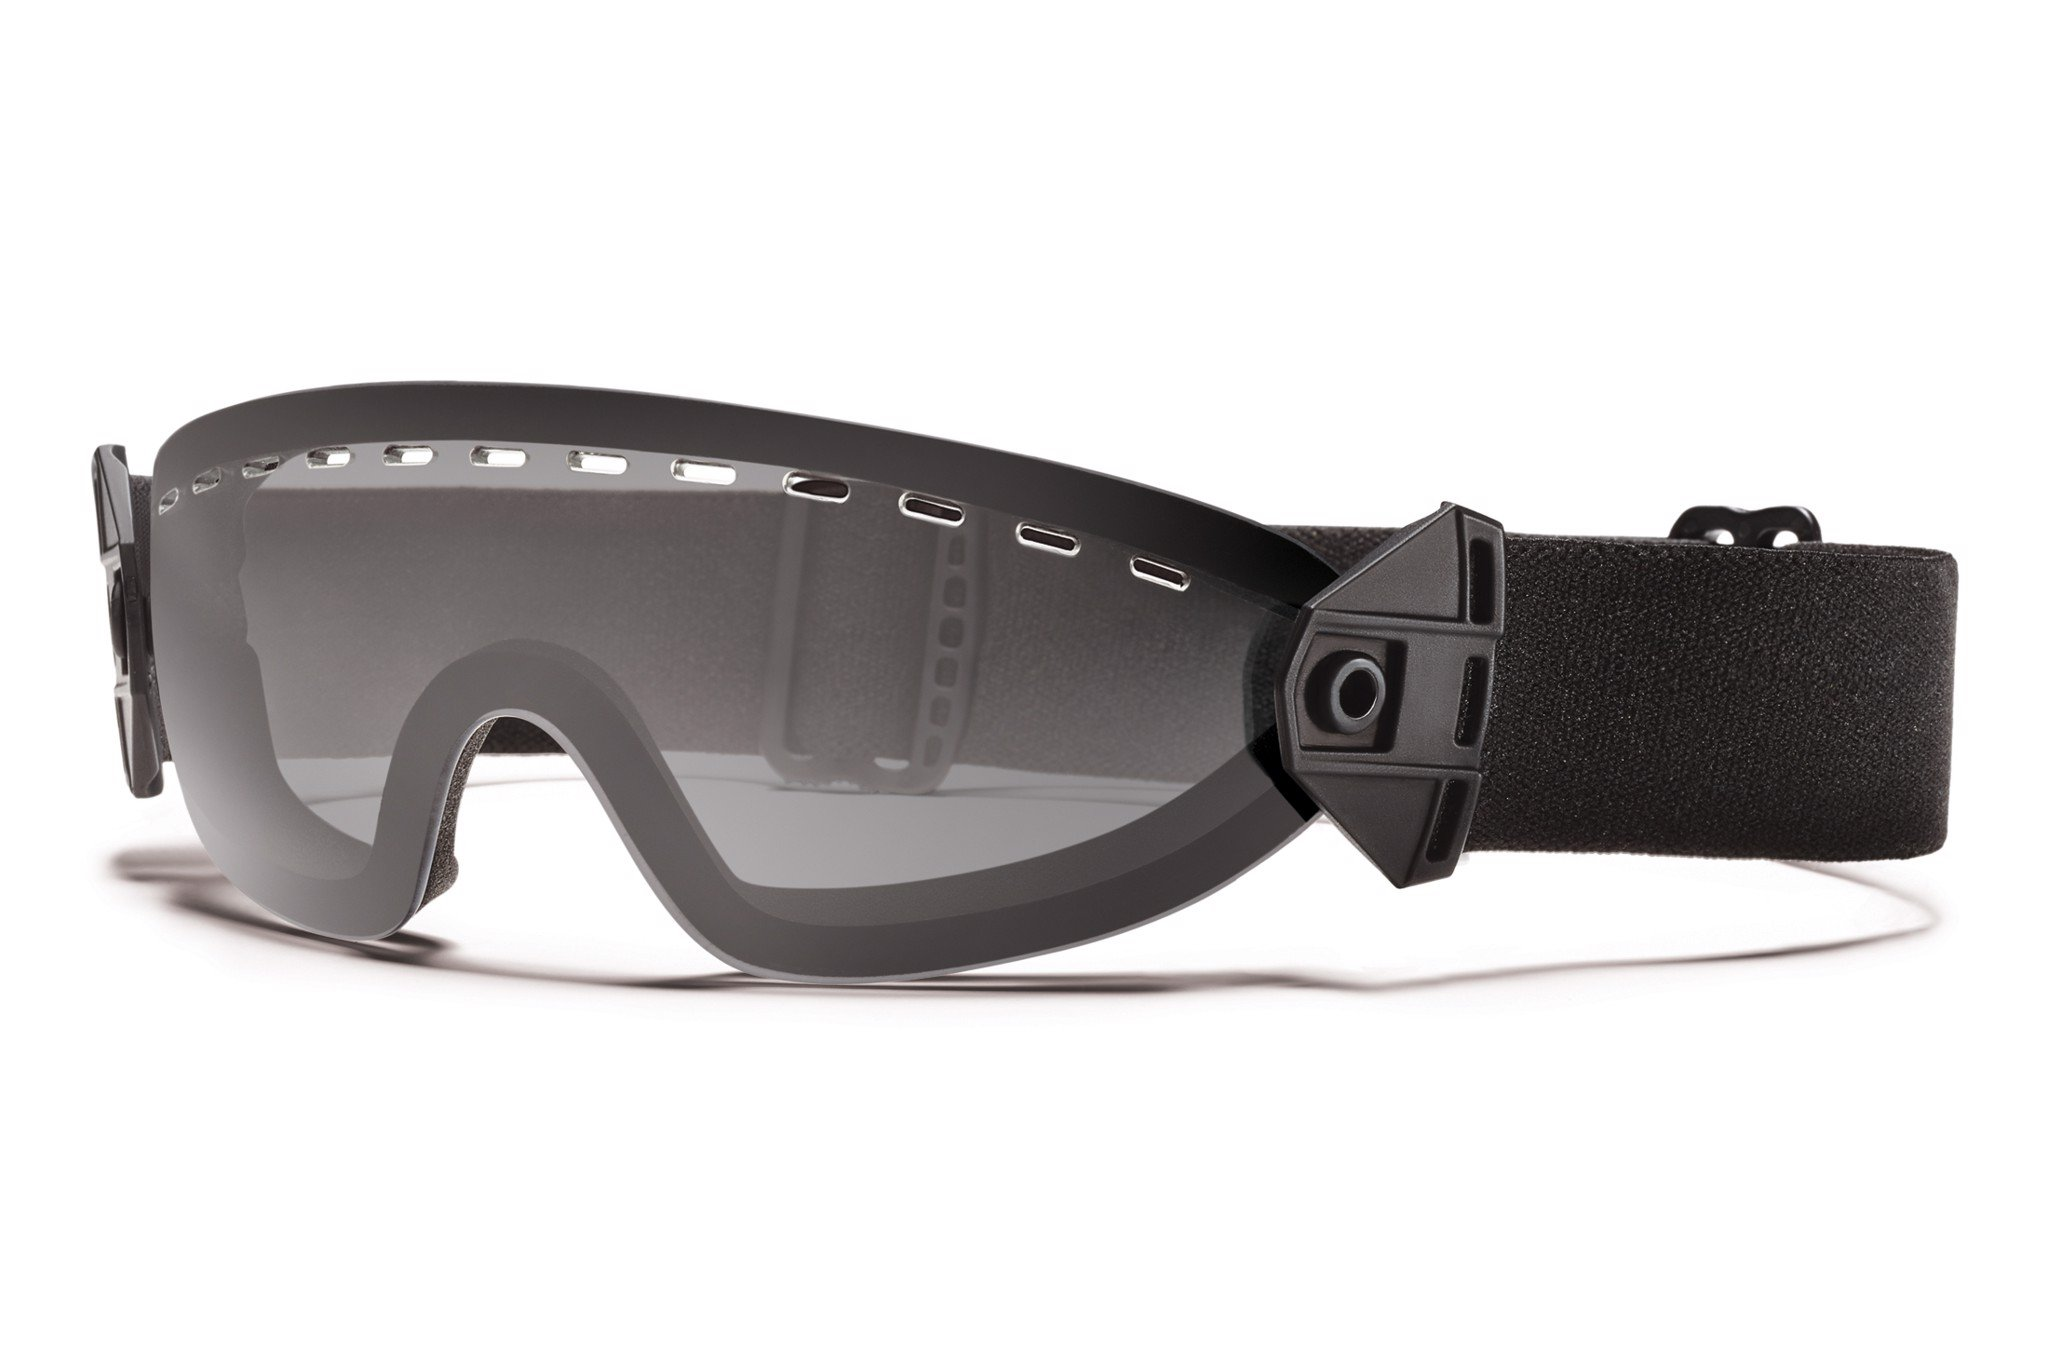 BOOGIE SOEP, 35mm BLACK STRAP, GRAY